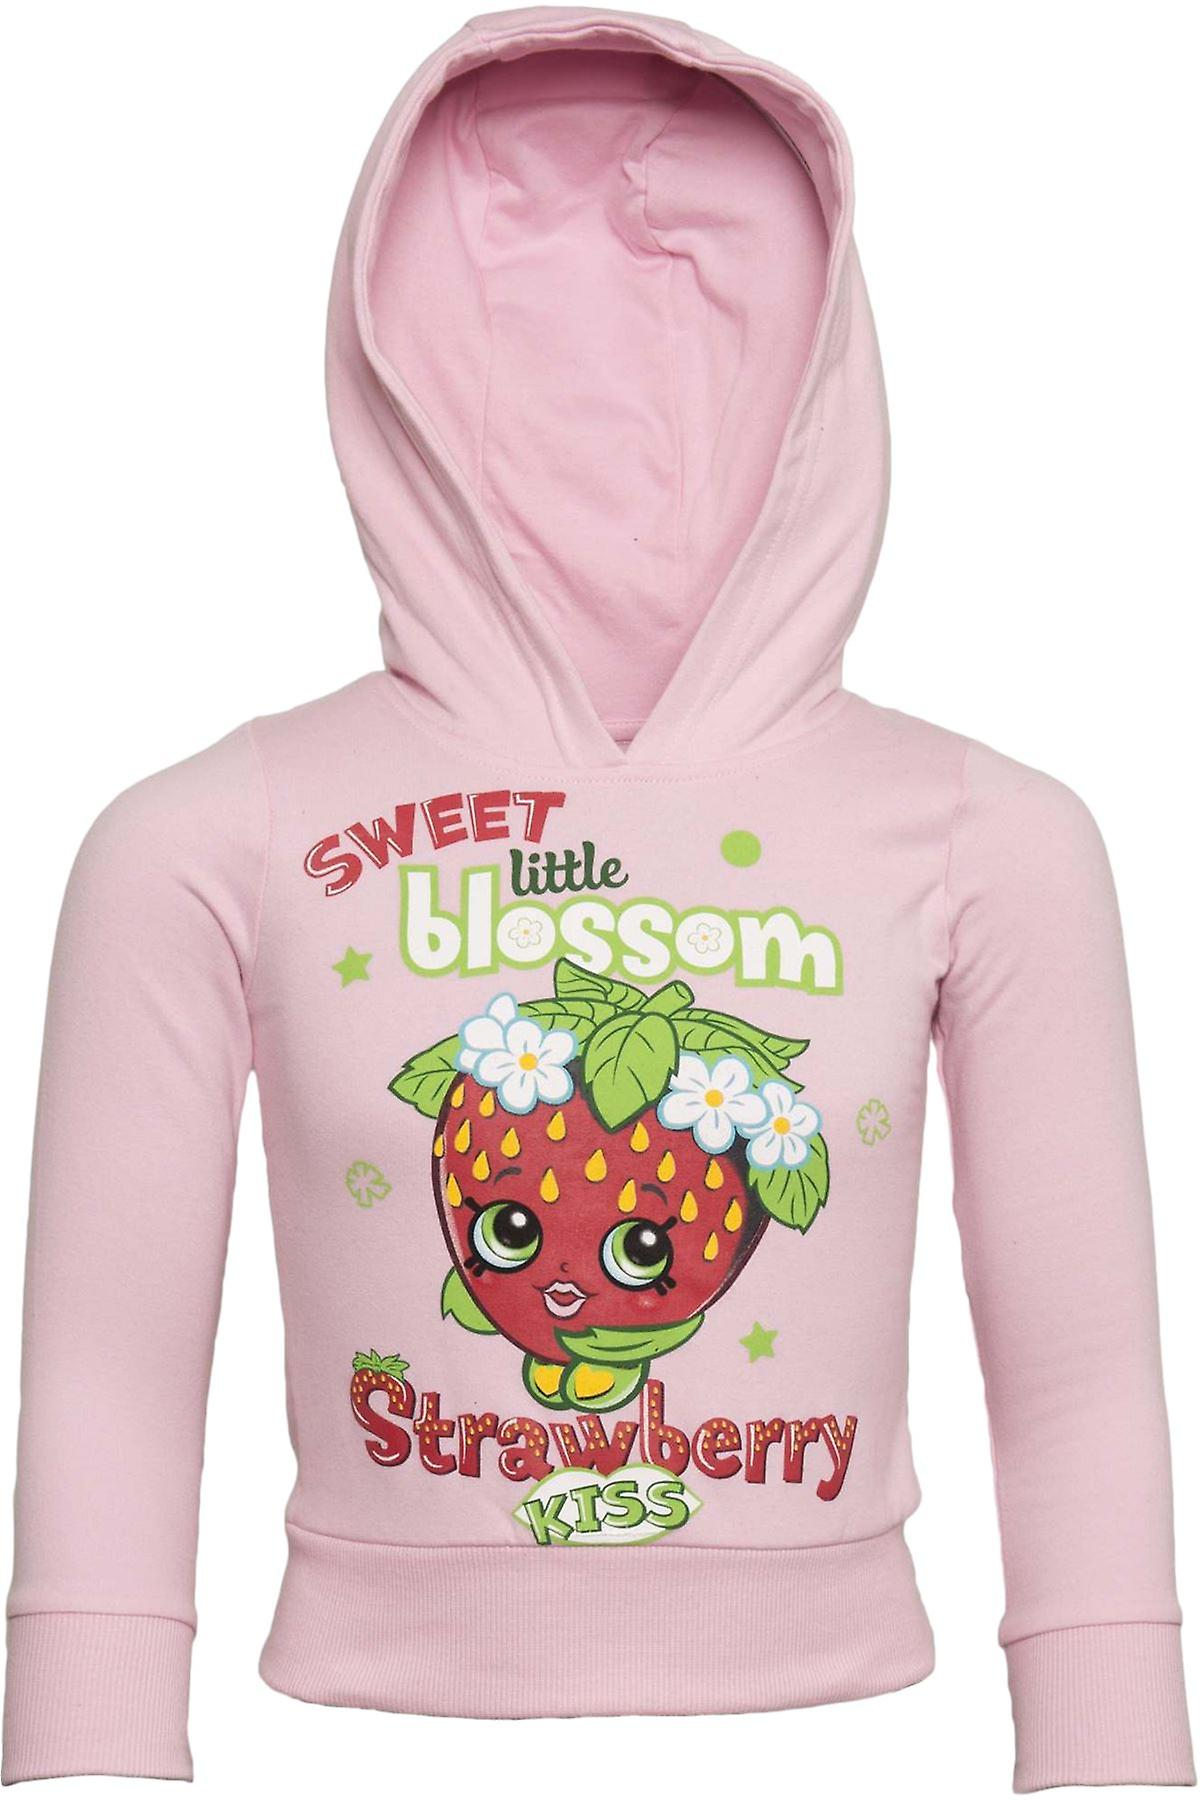 Officially Licensed   SHOPKINS   Shopkin Premium Youth Hoodie   Pink   AGE 3-4